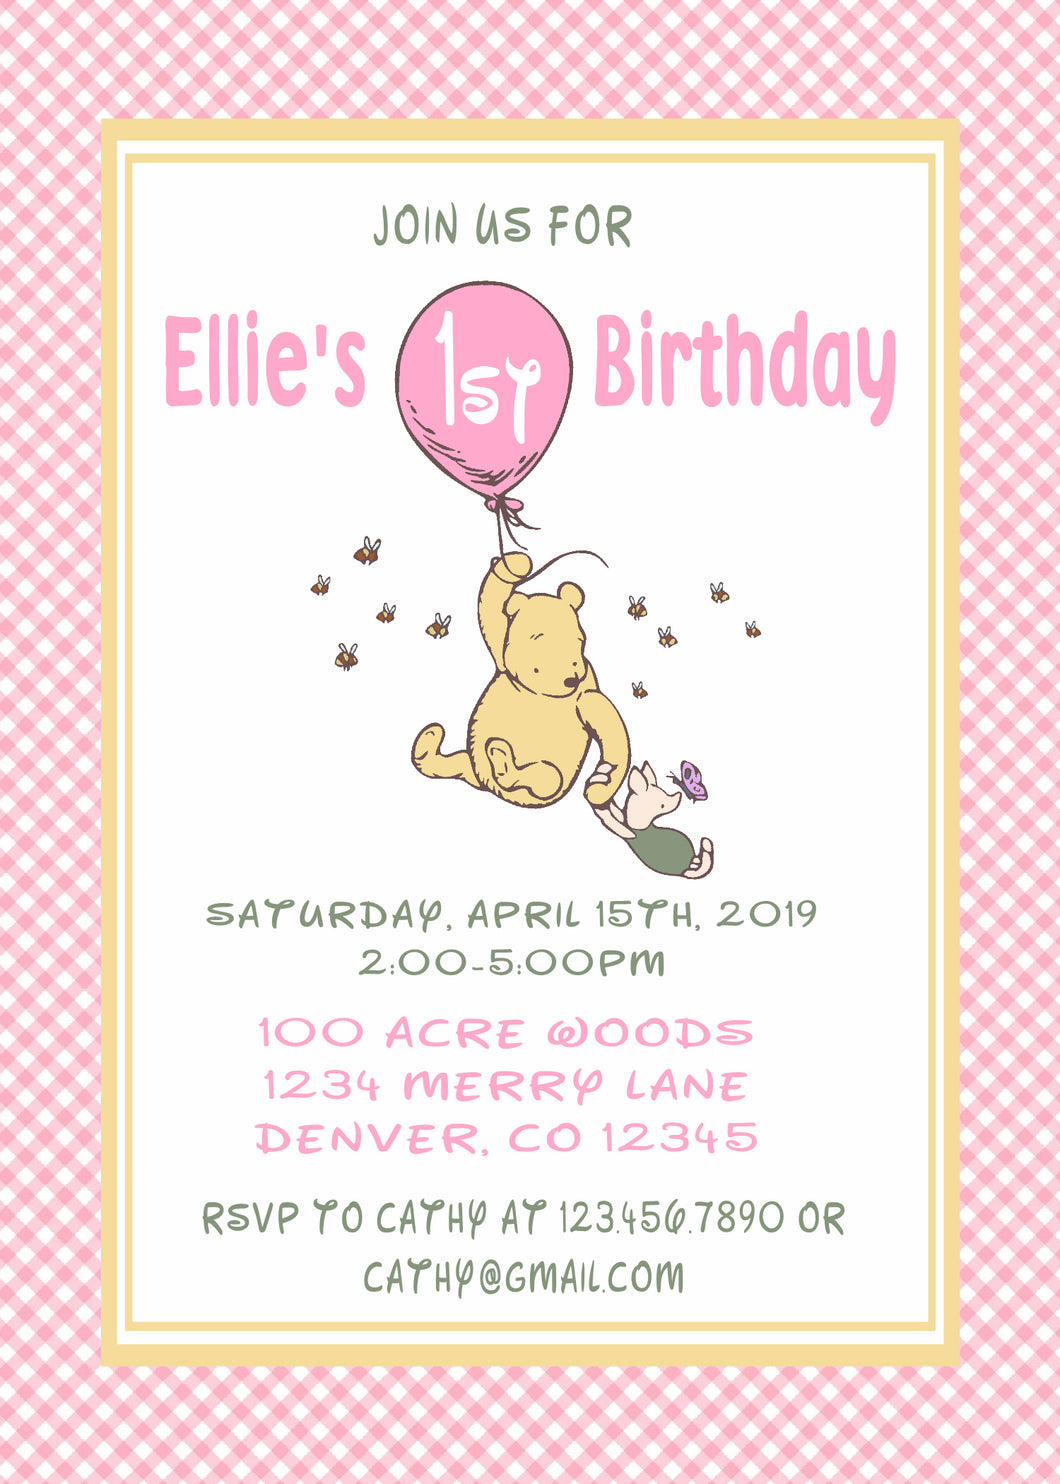 WINNIE THE POOH CLASSIC WITH BALLOON PINK - BIRTHDAY INVITATION